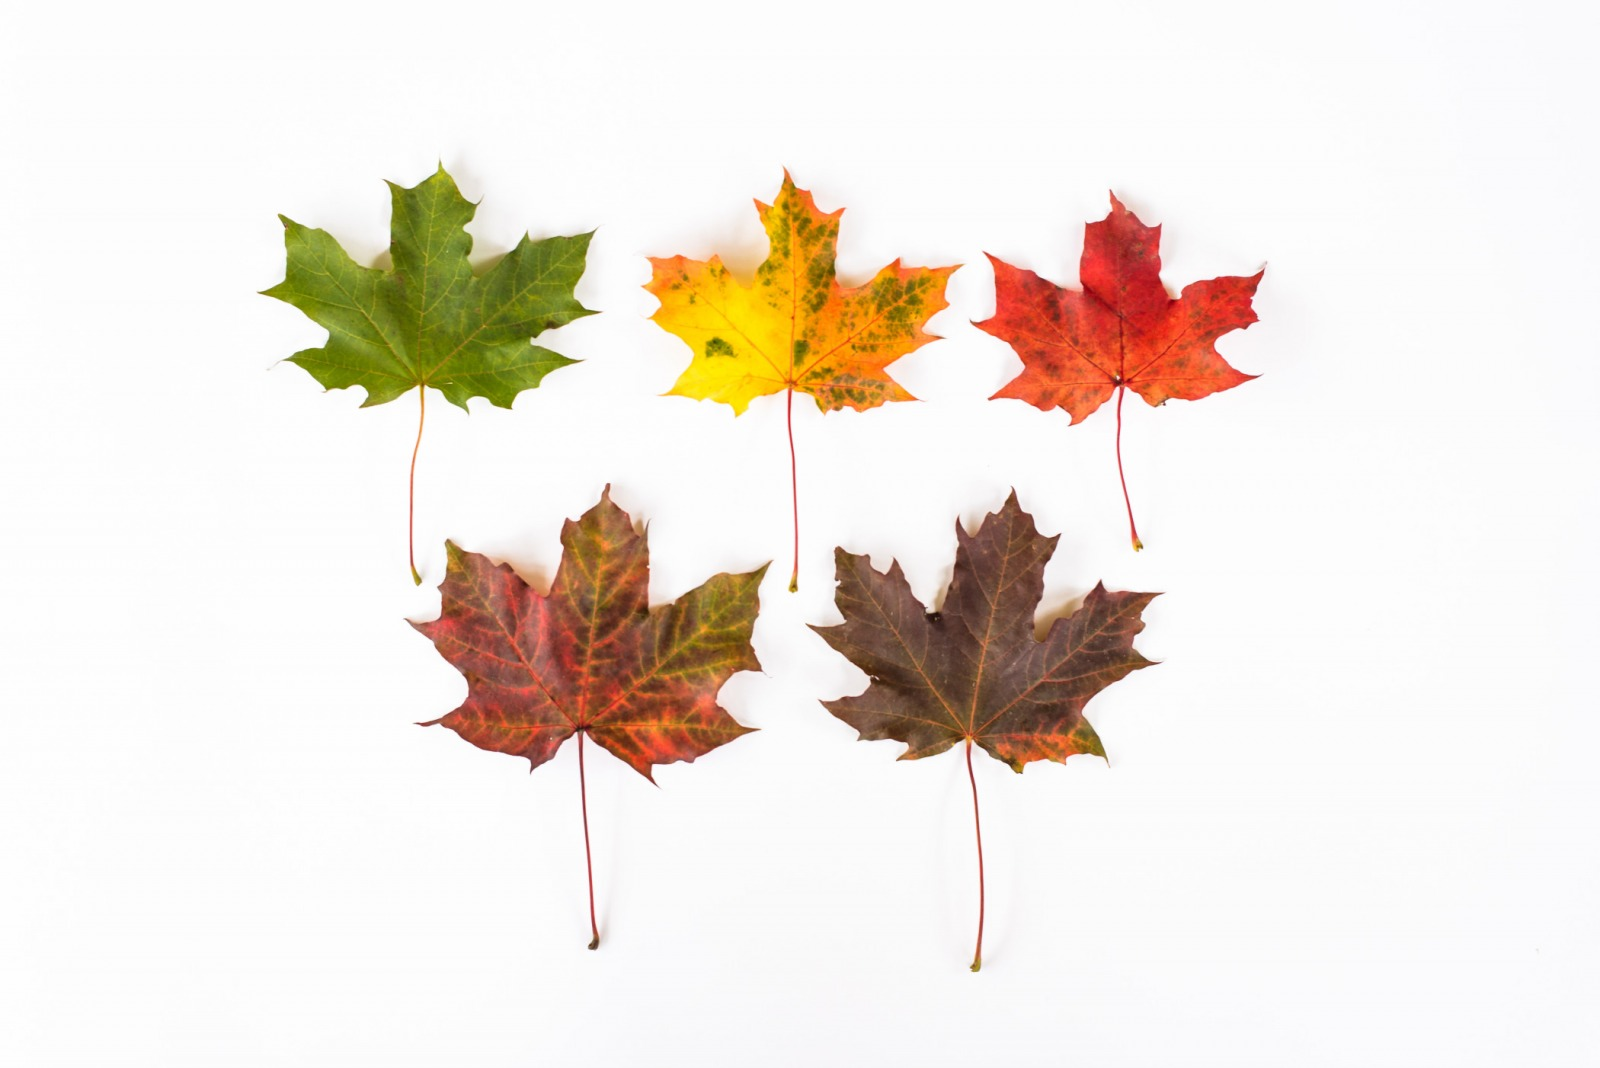 Multi-color fall leaves in an arrangement